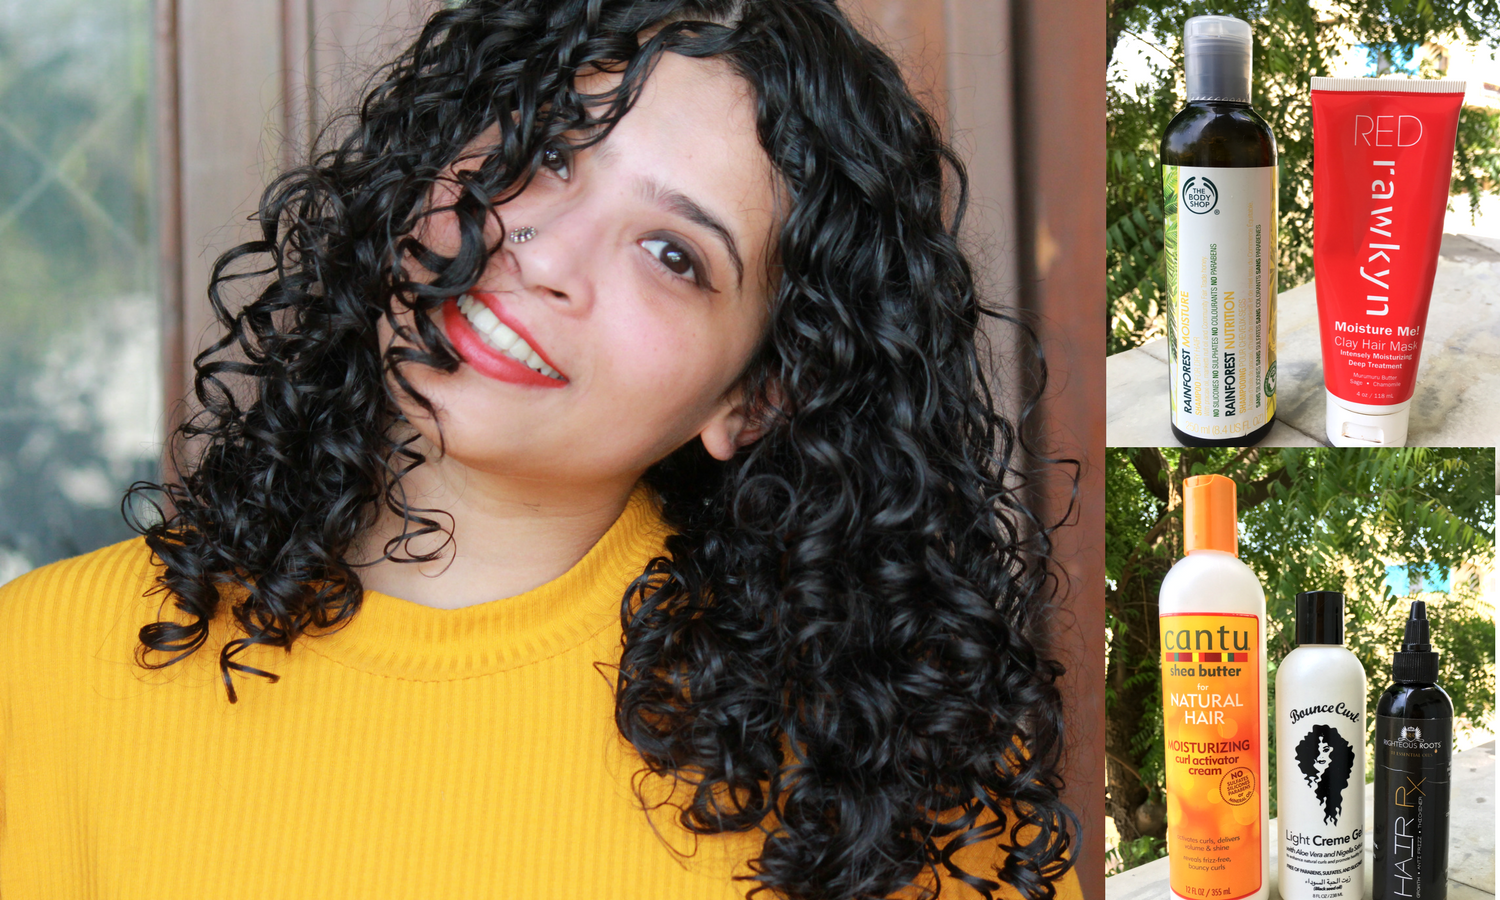 Curly hair routine diary No.4 cover picture